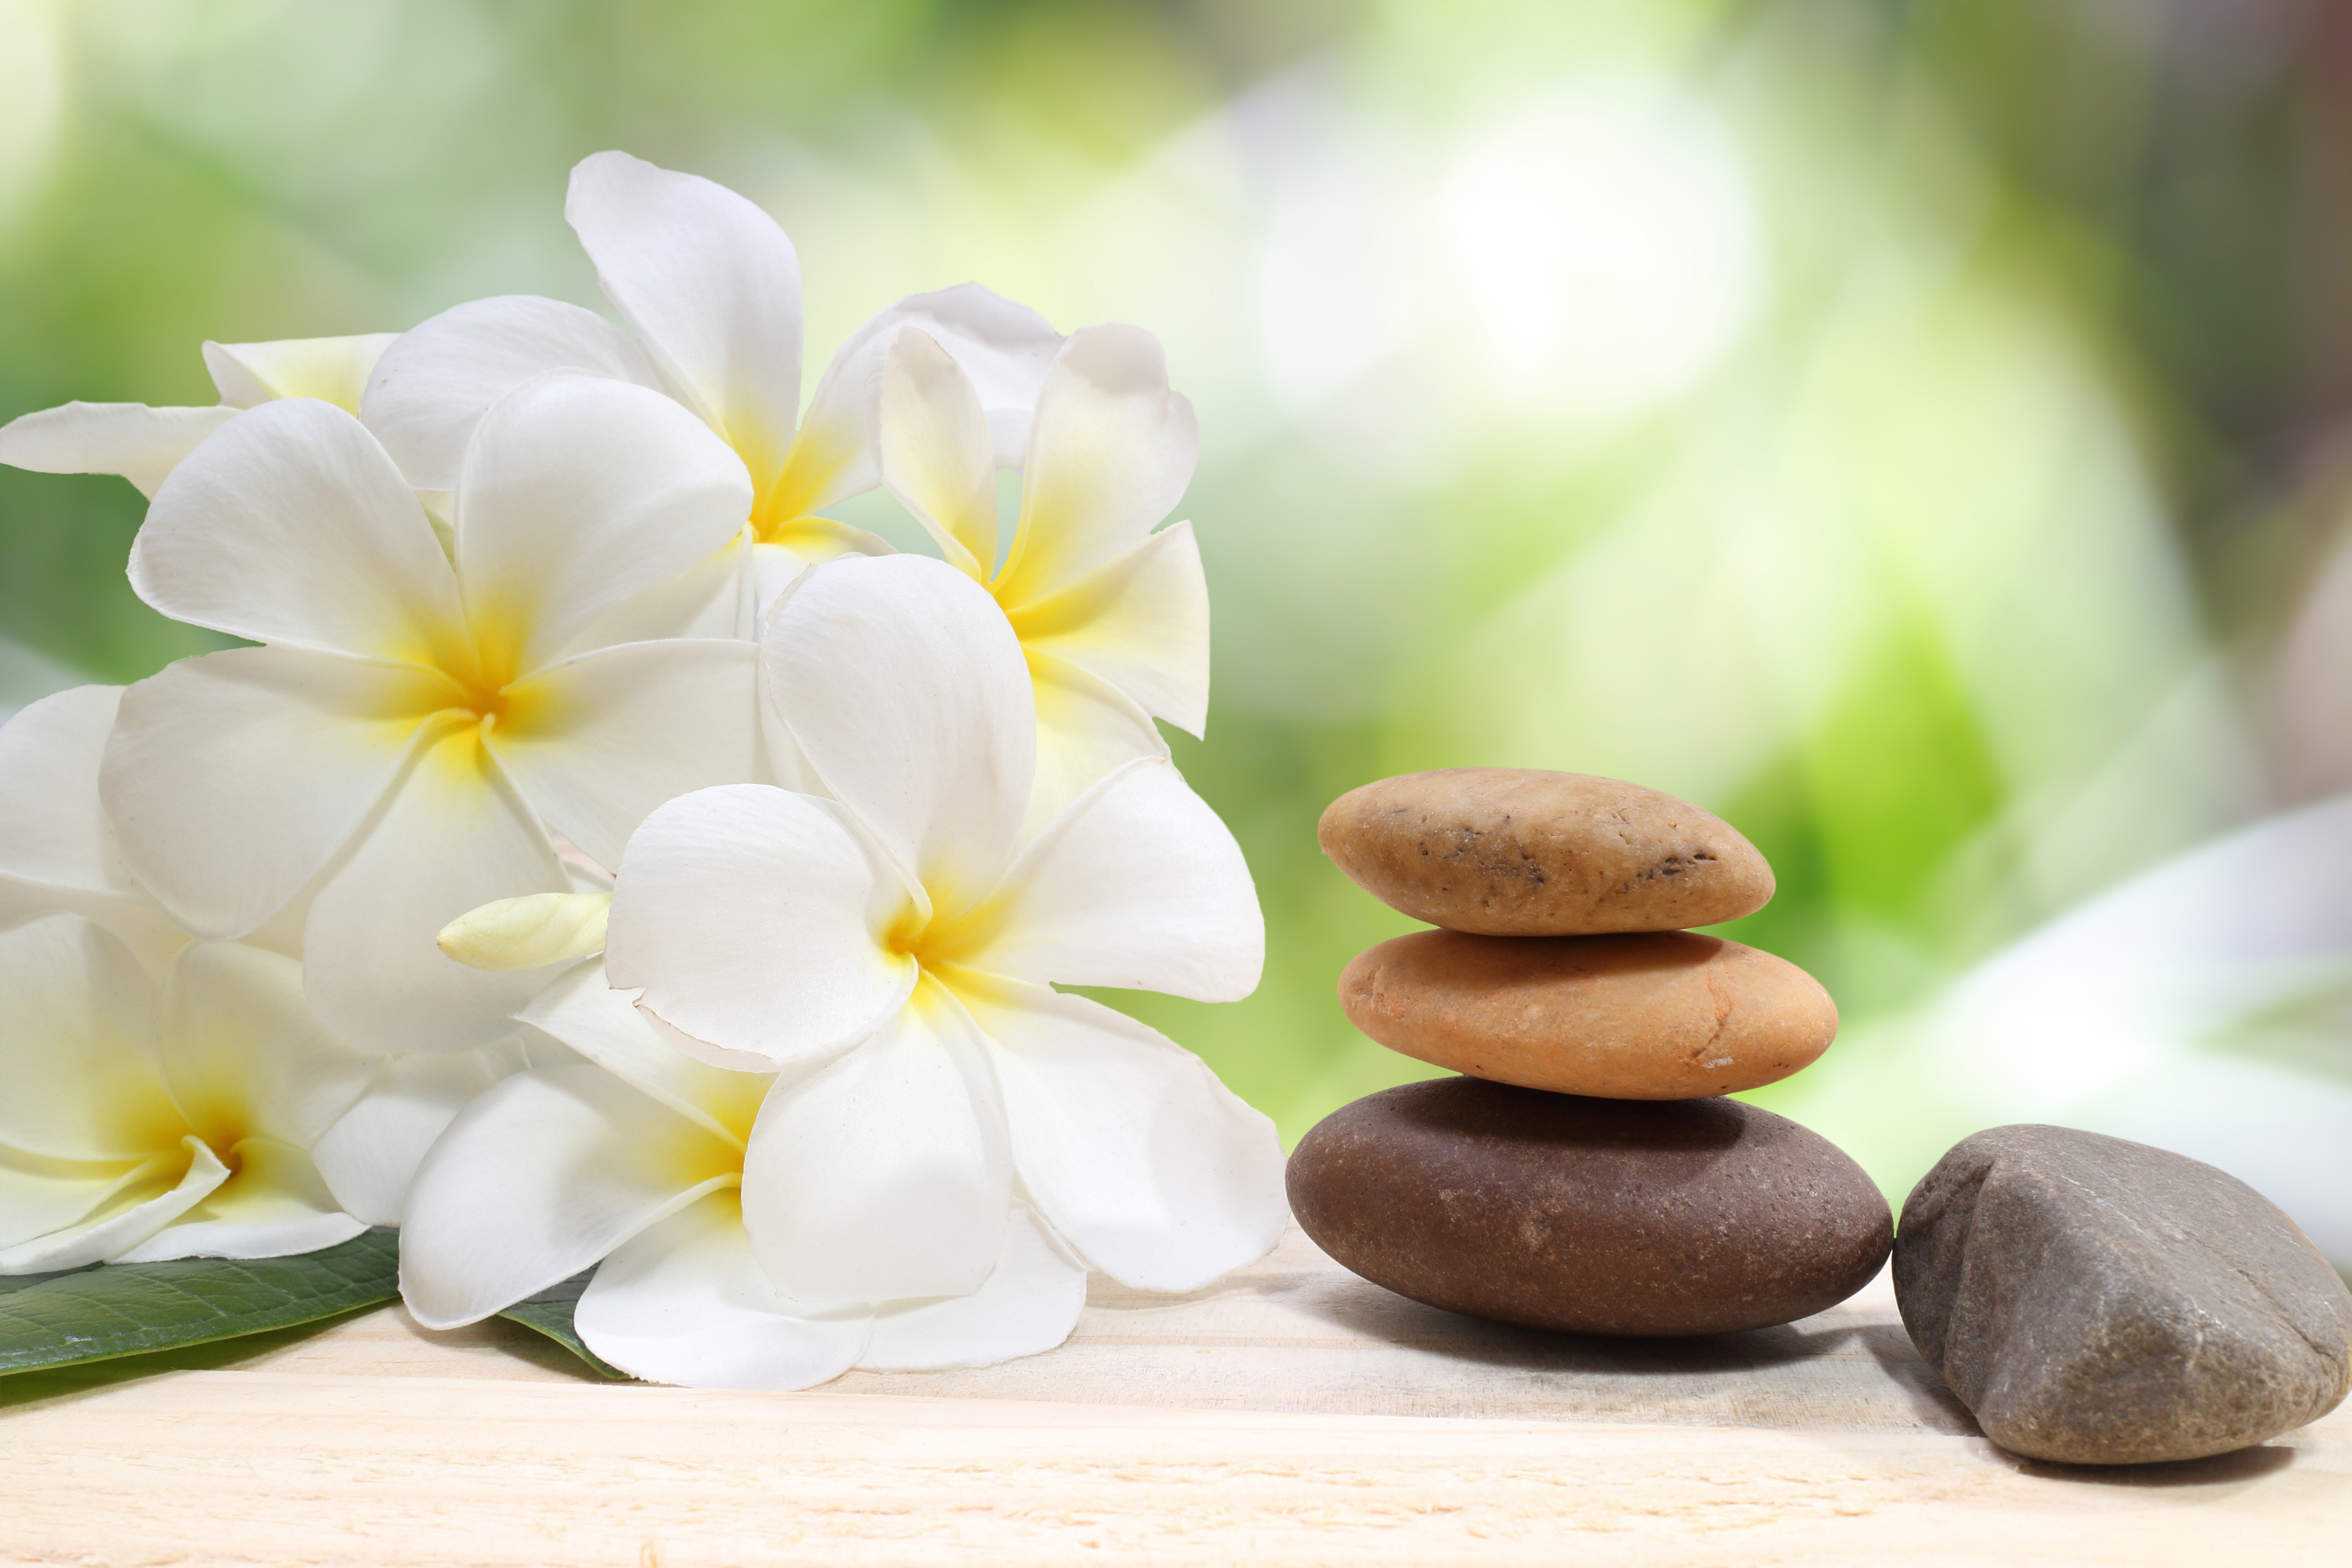 Zen spa concept background - Zen massage stones with frangipani plumeria flower